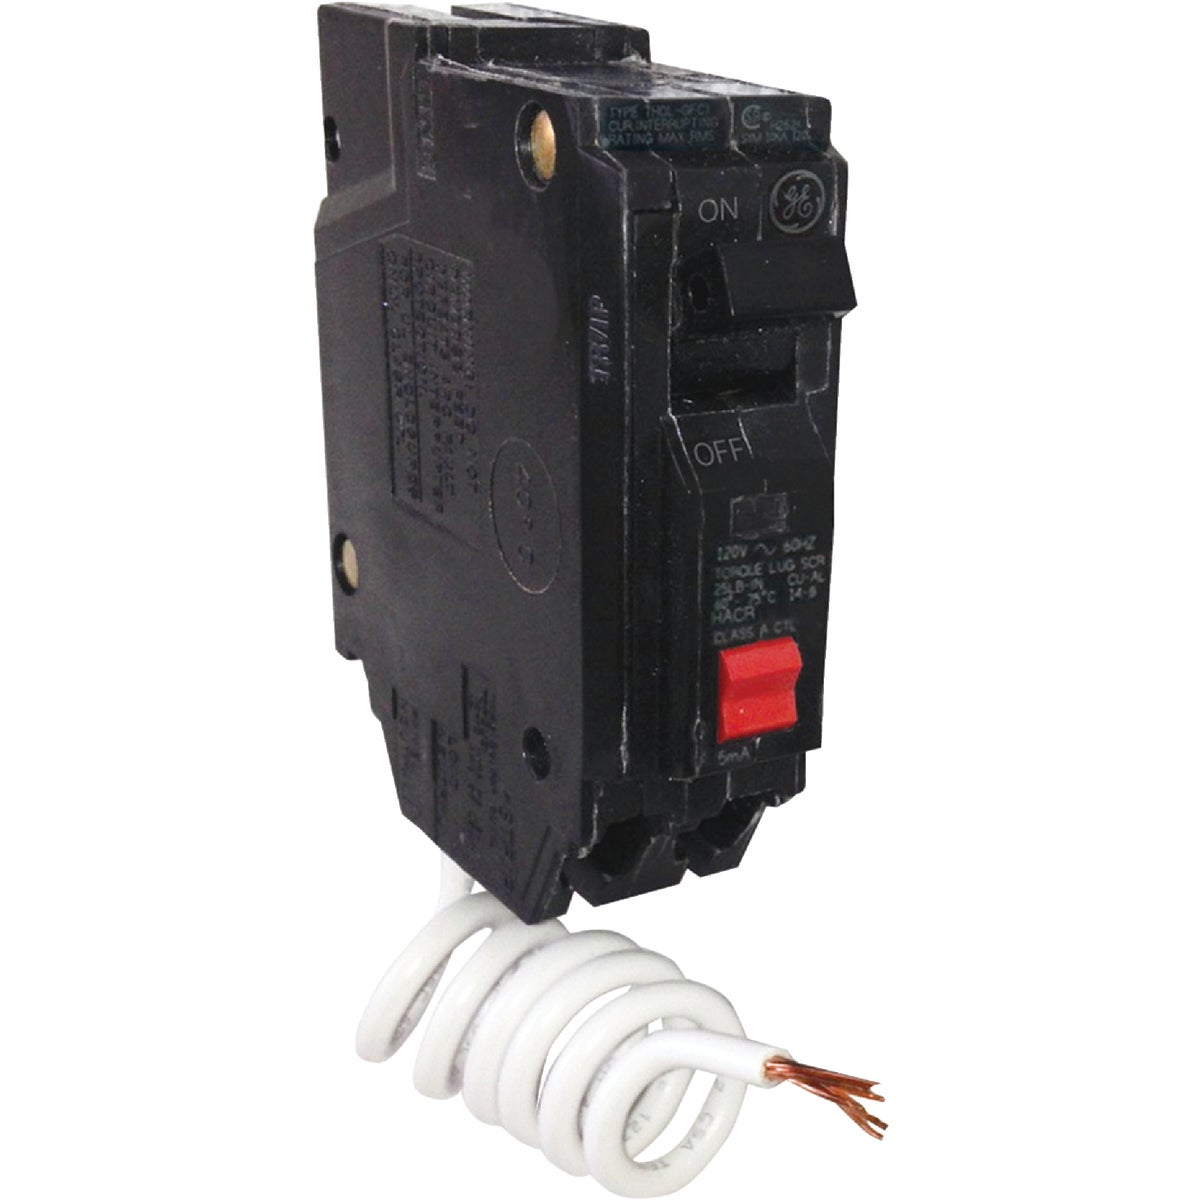 20A GFI CIRCUIT BREAKER - THQL1120GF by G E Industrial